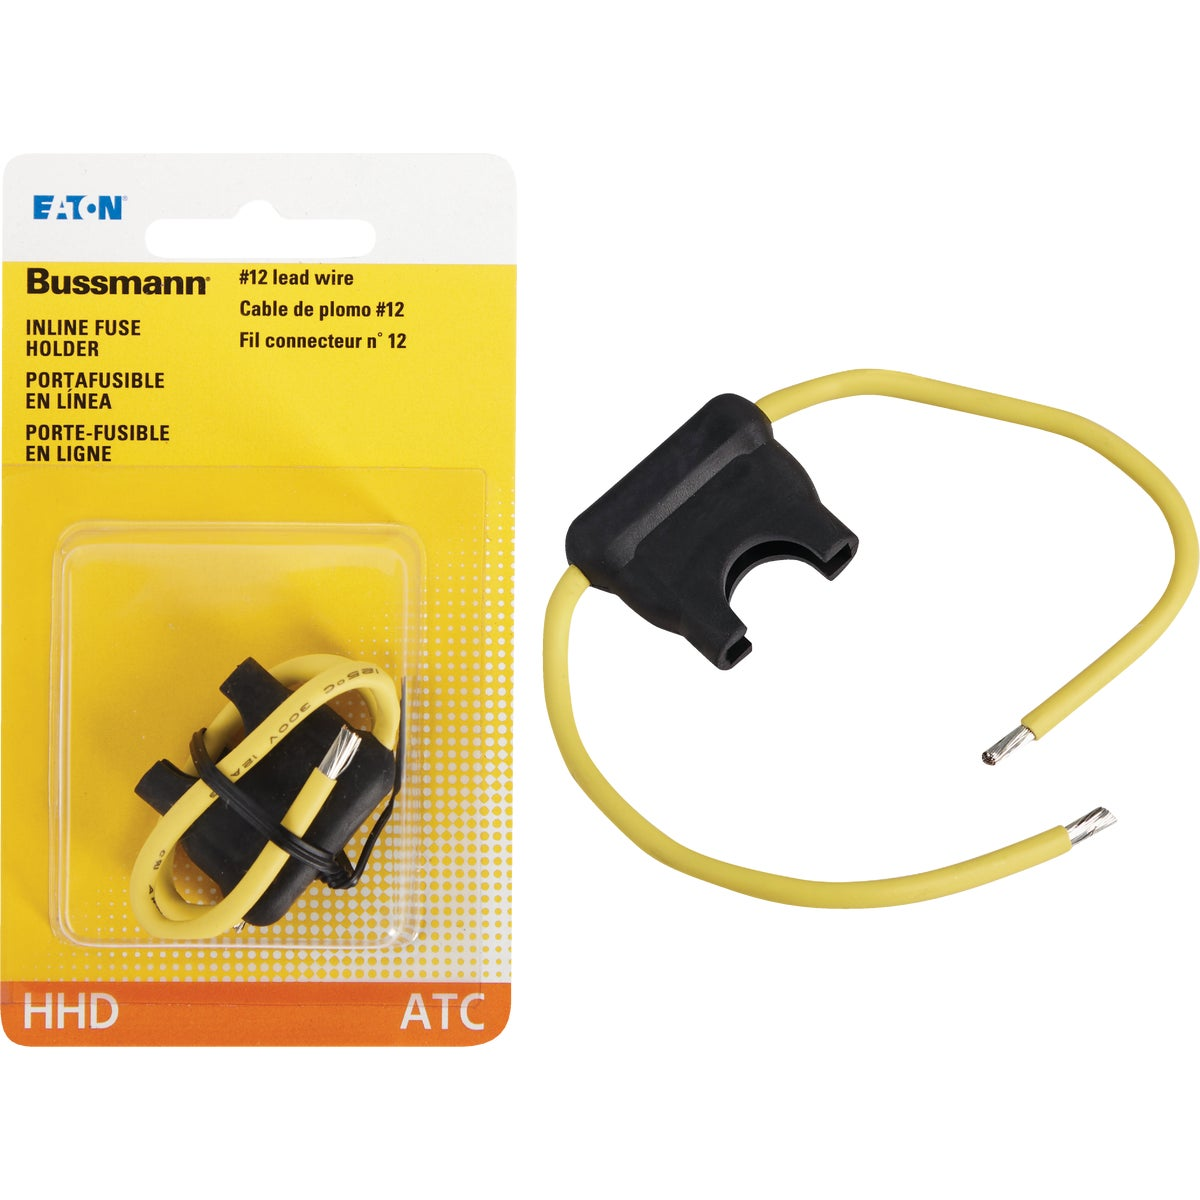 BLK BLADE FUSE HOLDER - BP/HHD-RP by Bussmann Cooper